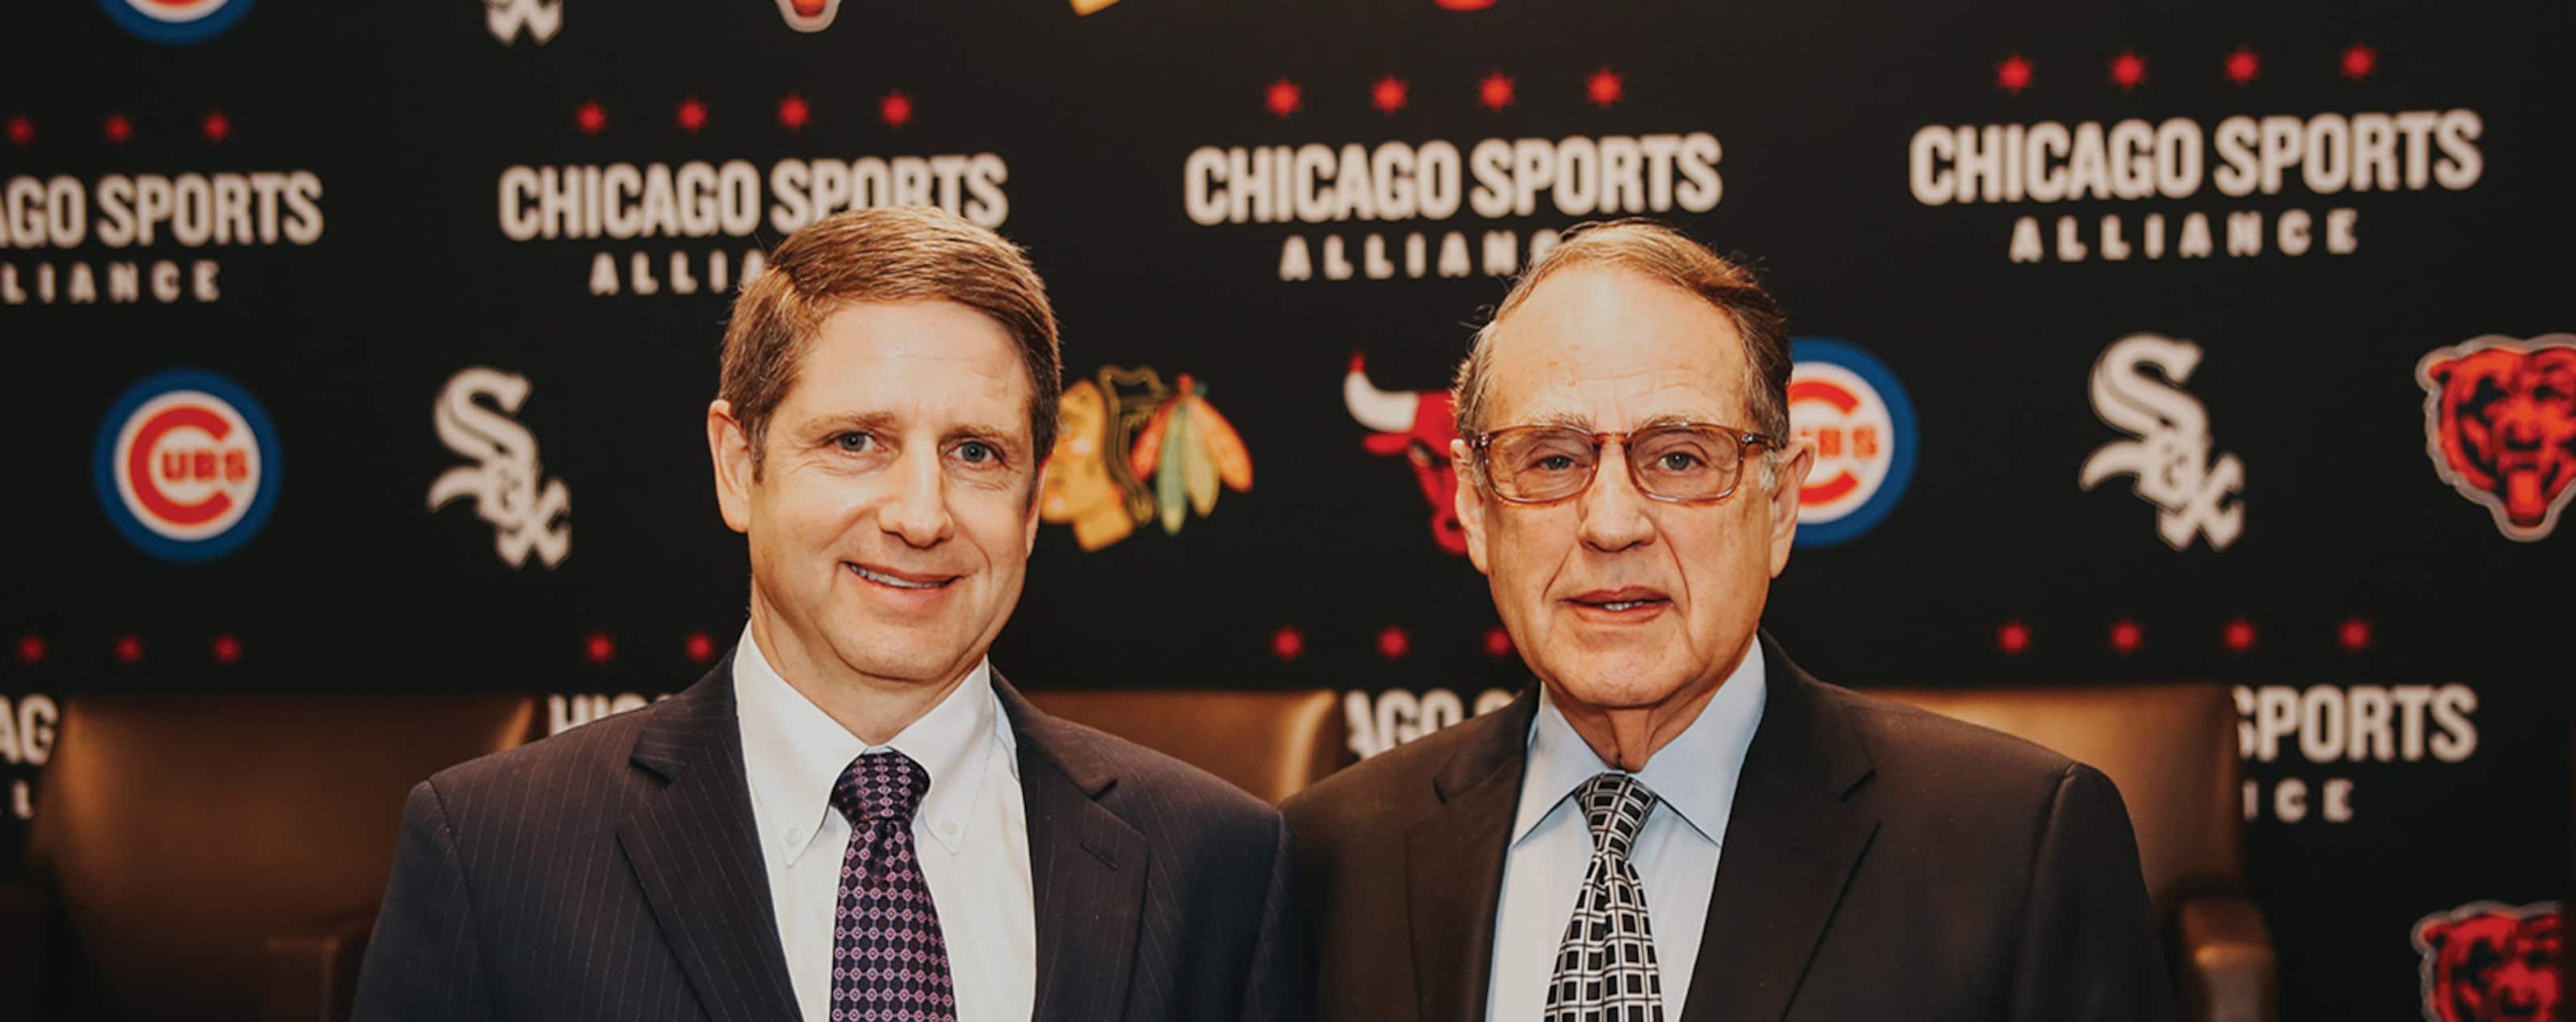 Jerry Reinsdorf (right) alongside his son, Michael Reinsdorf, President and Chief Operating Officer of the Chicago Bulls, at a Chicago Sports Alliance event